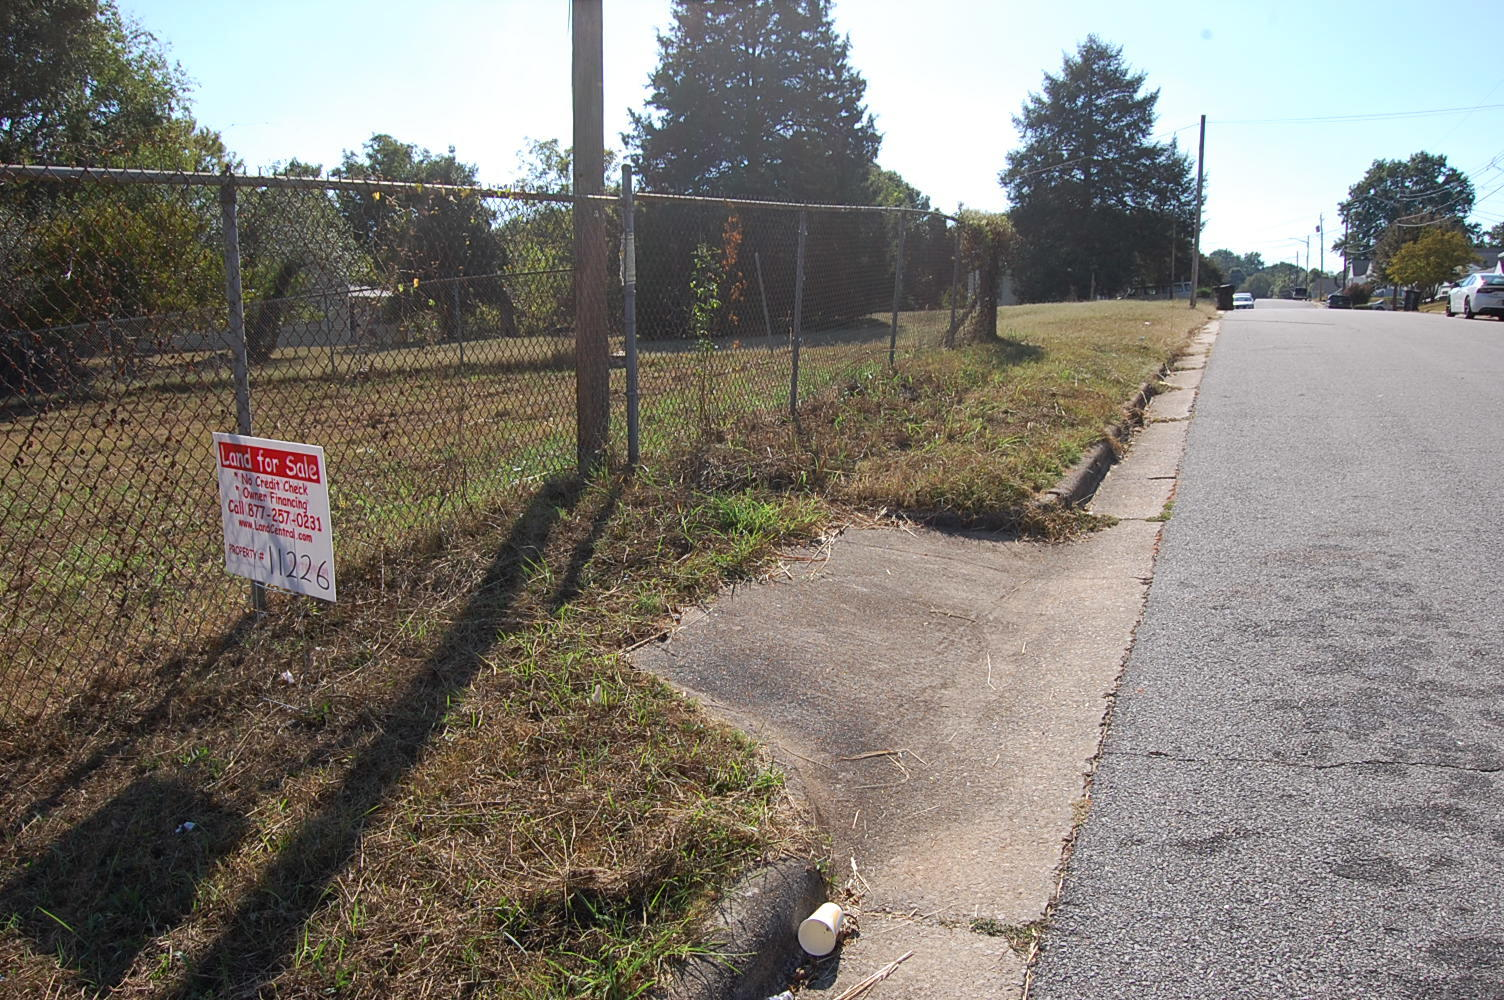 Fenced Two Lots Sold as One - Image 4